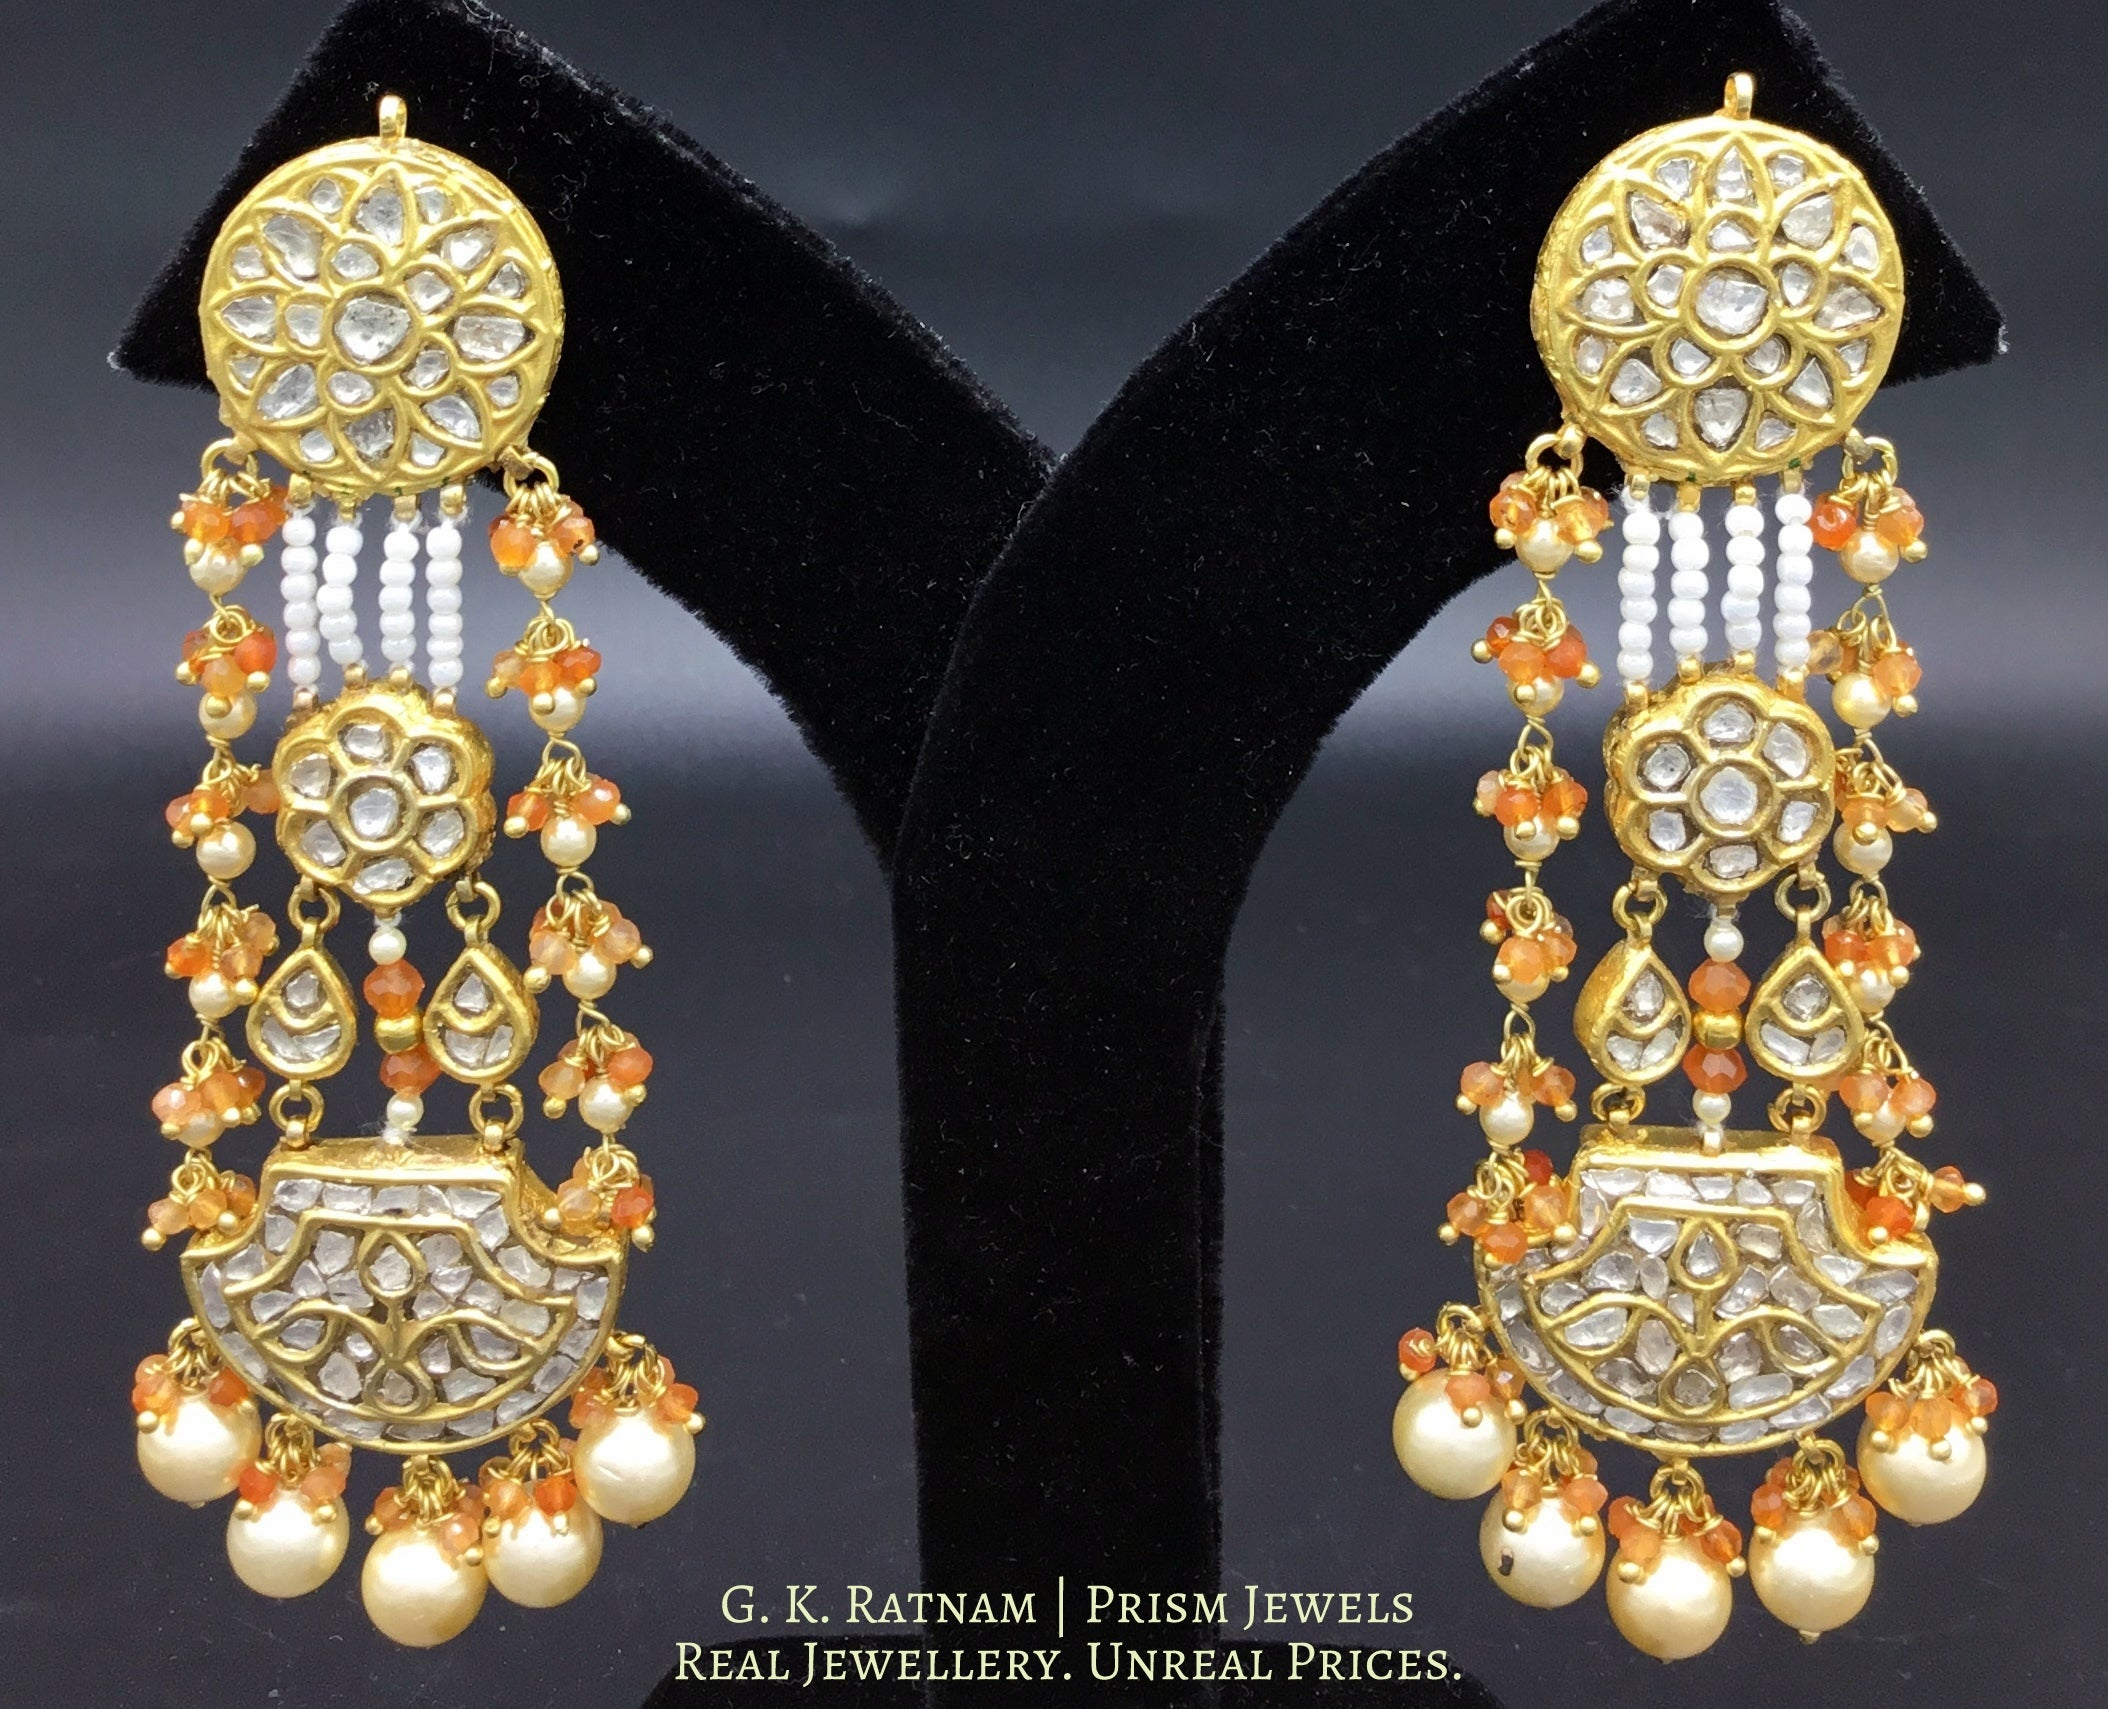 23k Gold and Diamond Polki pankhi (fan) Long Earring Pair with orange carnelians and natural freshwater pearls - gold diamond polki kundan meena jadau jewellery